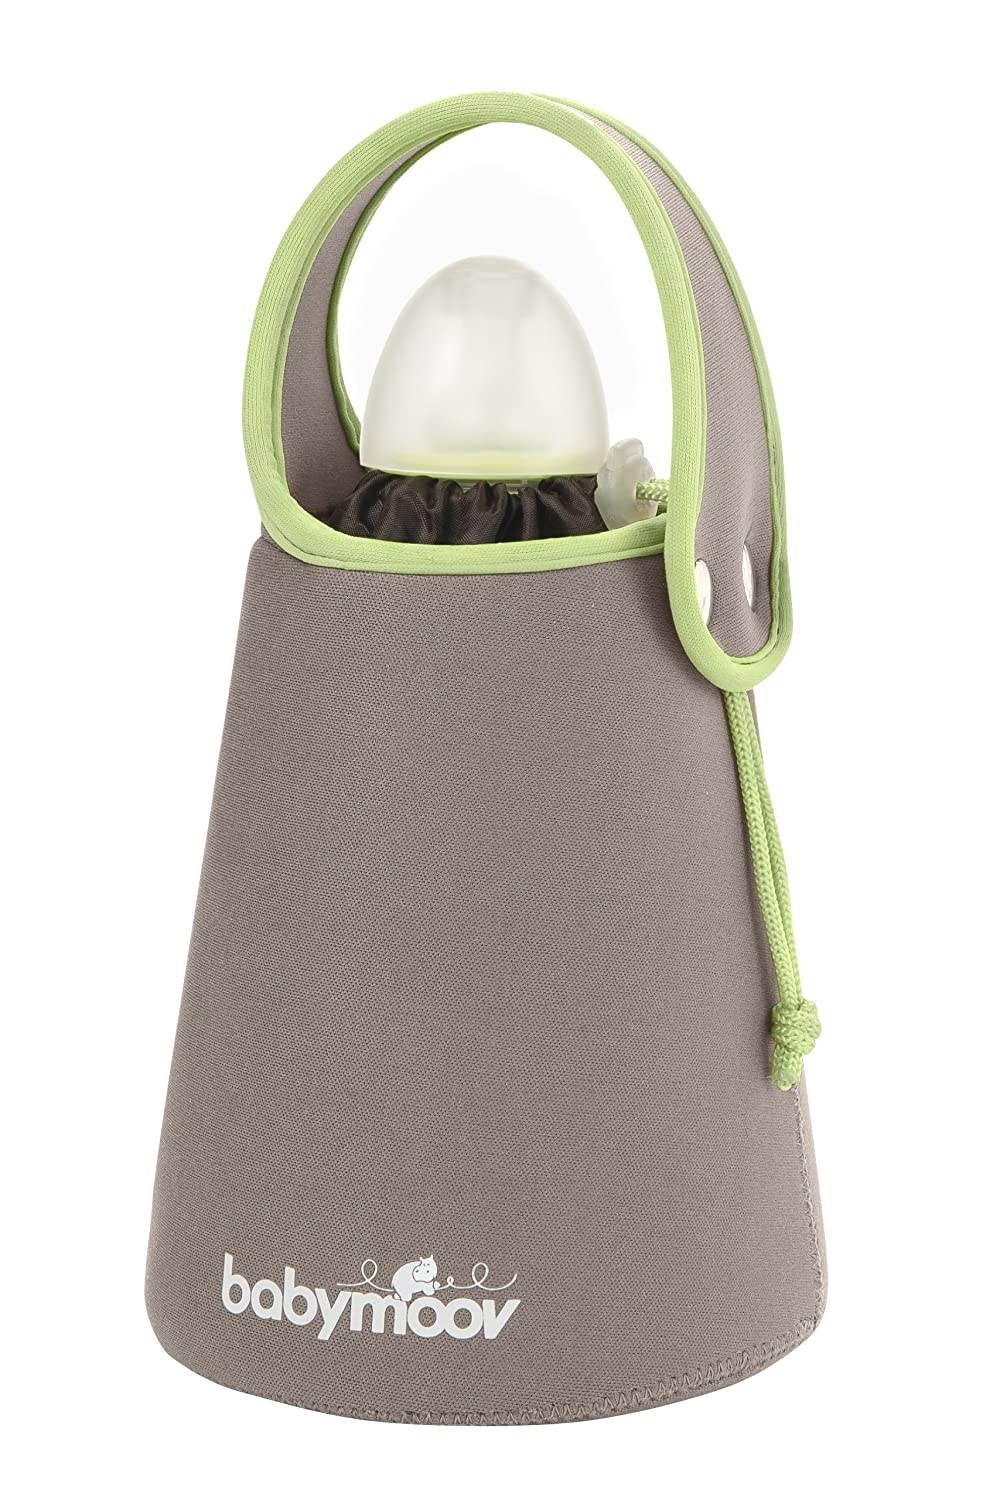 Babymoov Almond Travel Bottle Warmer (Brown/Taupe) A002101